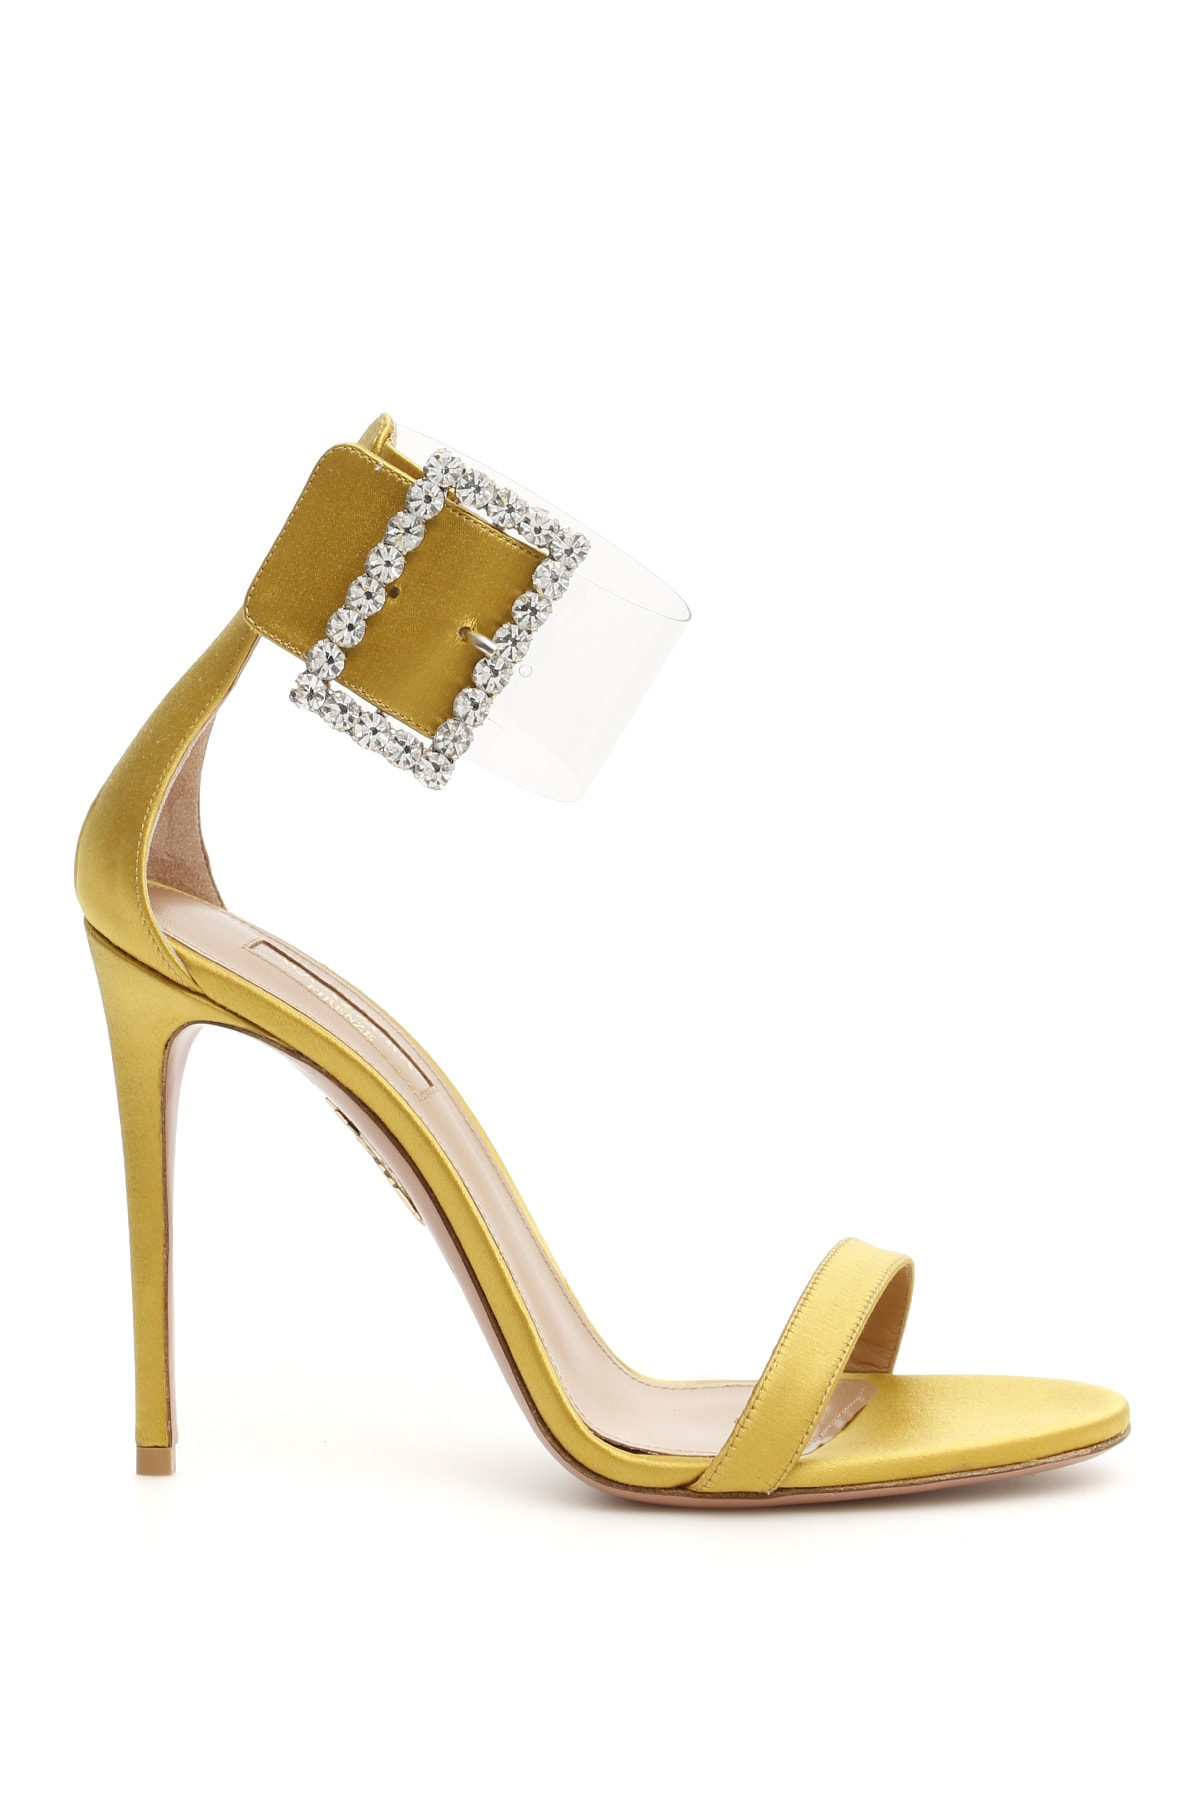 Aquazzura Casablanca Strass Sandals 105